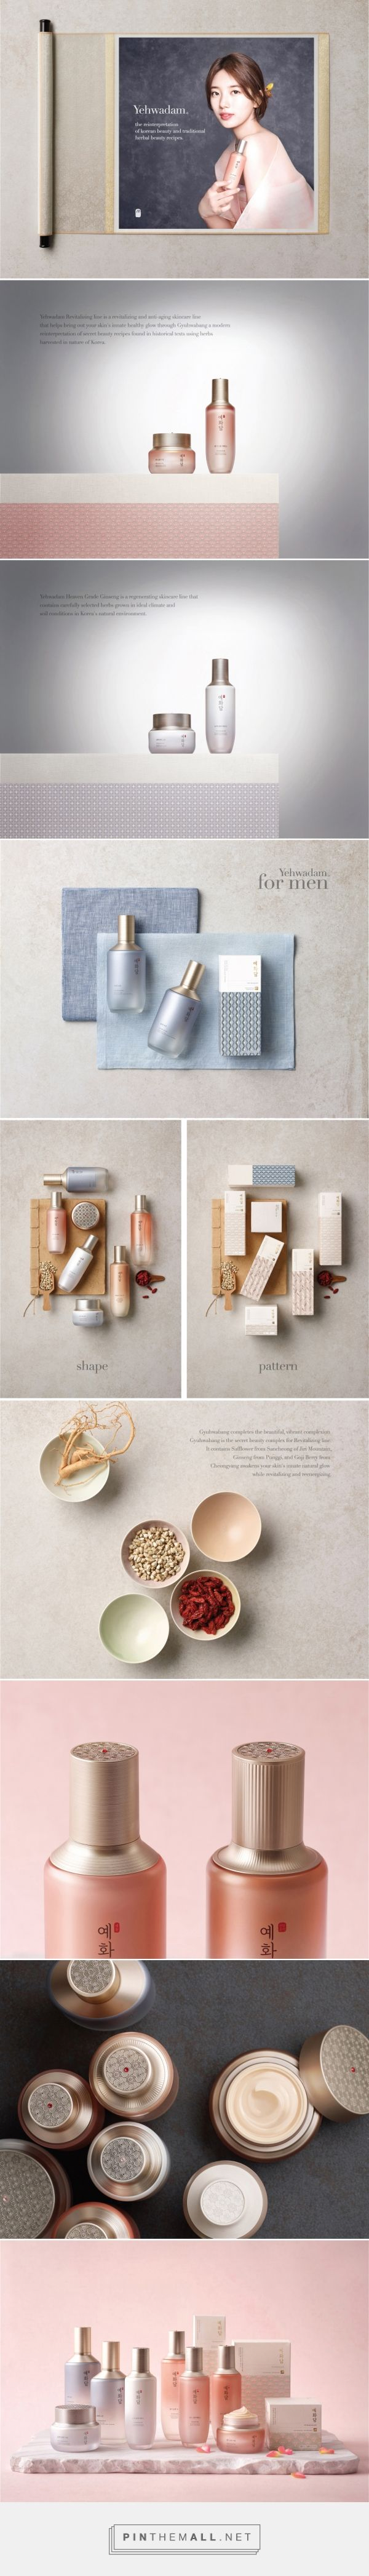 Yehwadam Faceshop - Packaging of the World - Creative Package Design Gallery - http://www.packagingoftheworld.com/2016/12/yehwadam.html